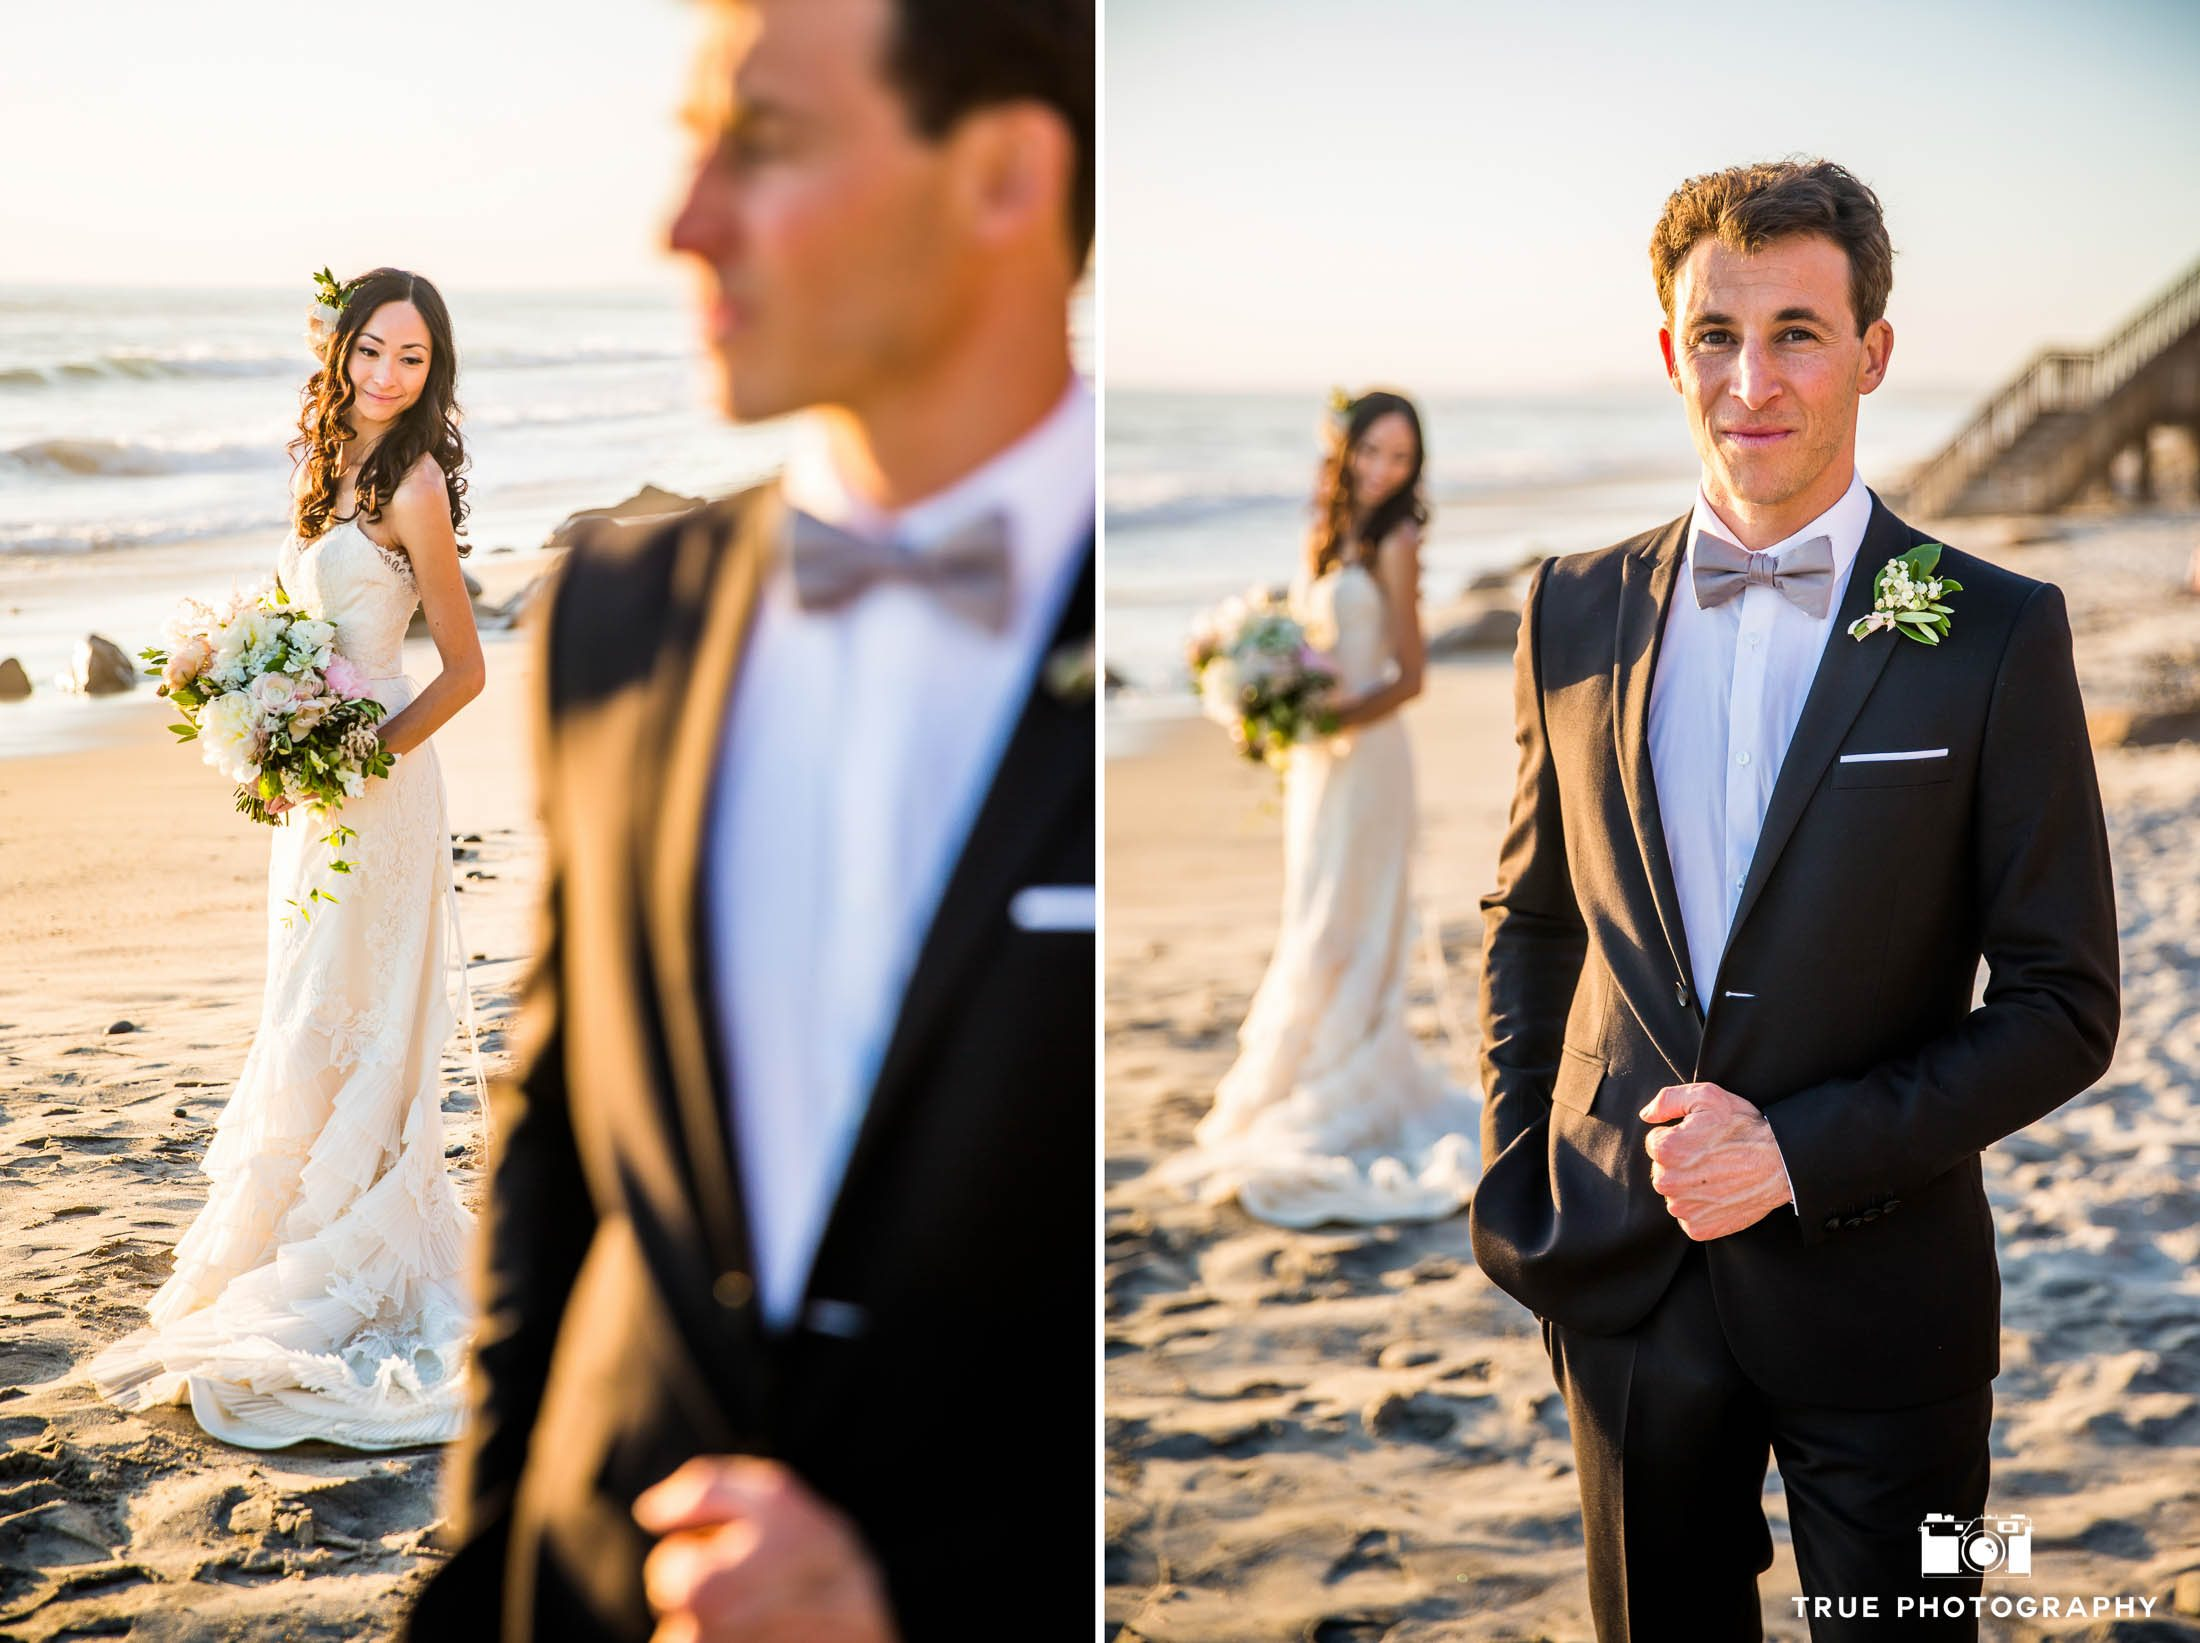 Creative beach portraits of newlyweds at Carlsbad beach